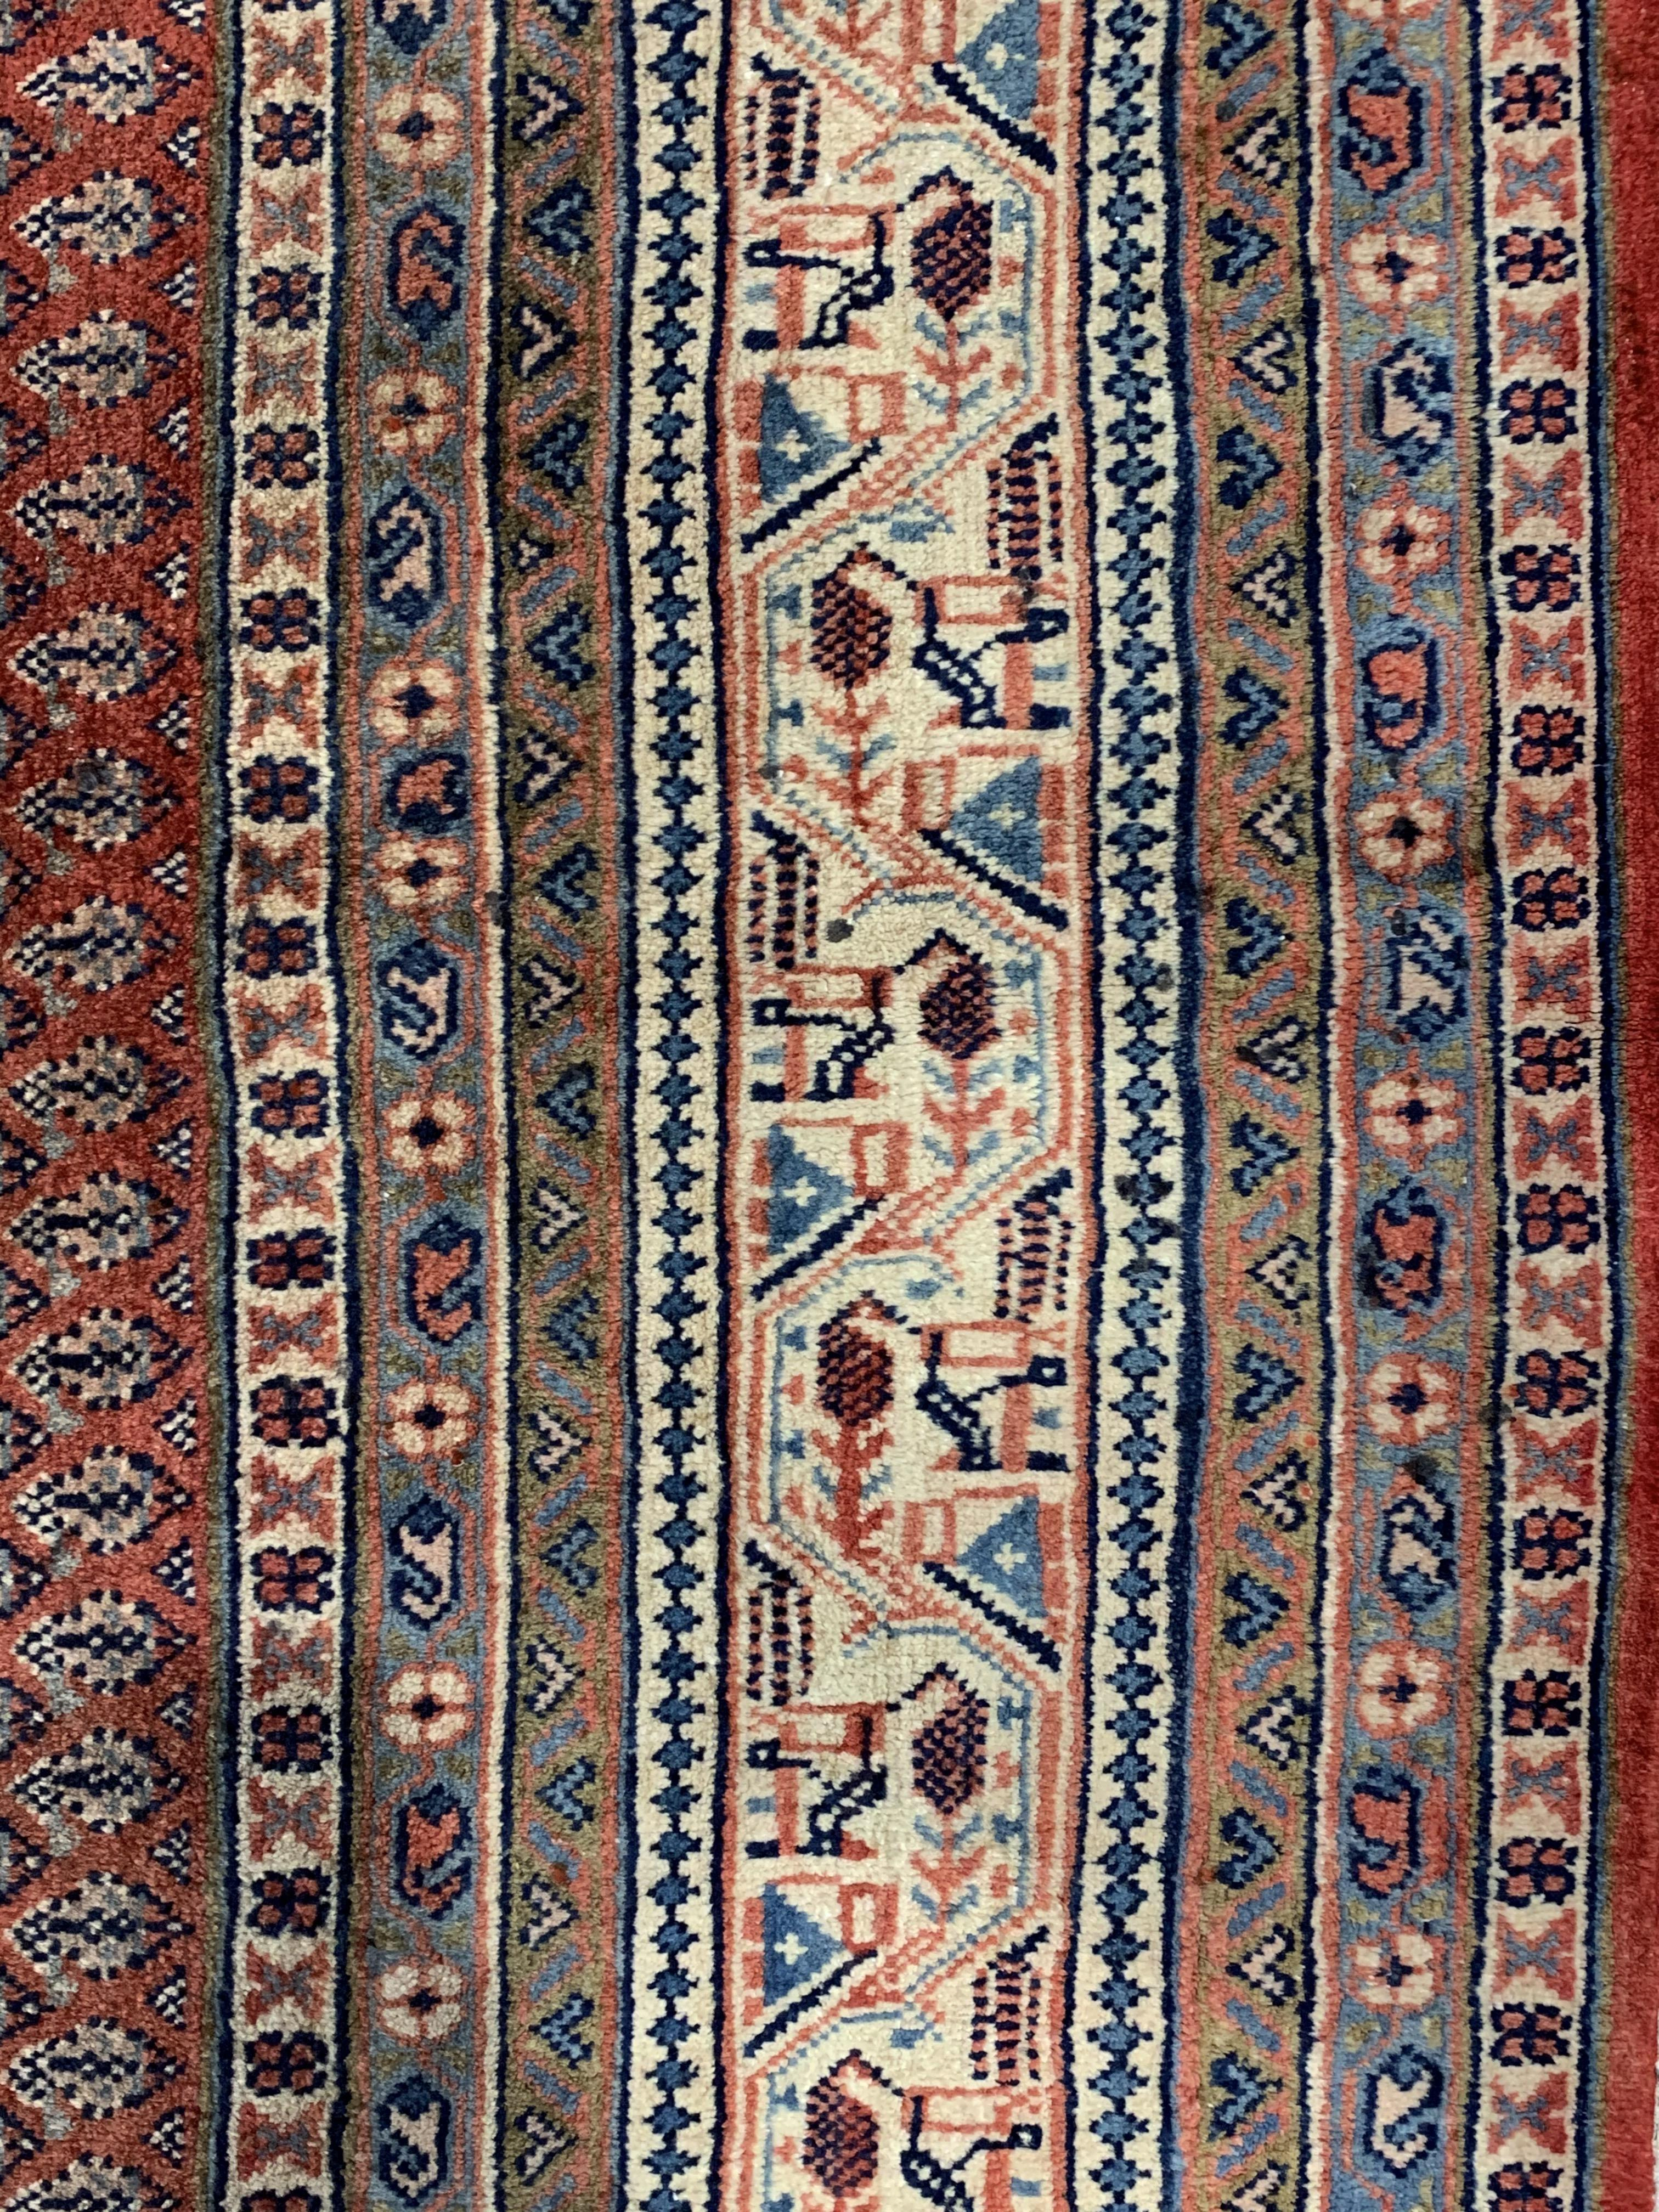 Large Persian Araak carpet, red ground field decorated all over with Boteh motifs, multiple band - Image 3 of 4